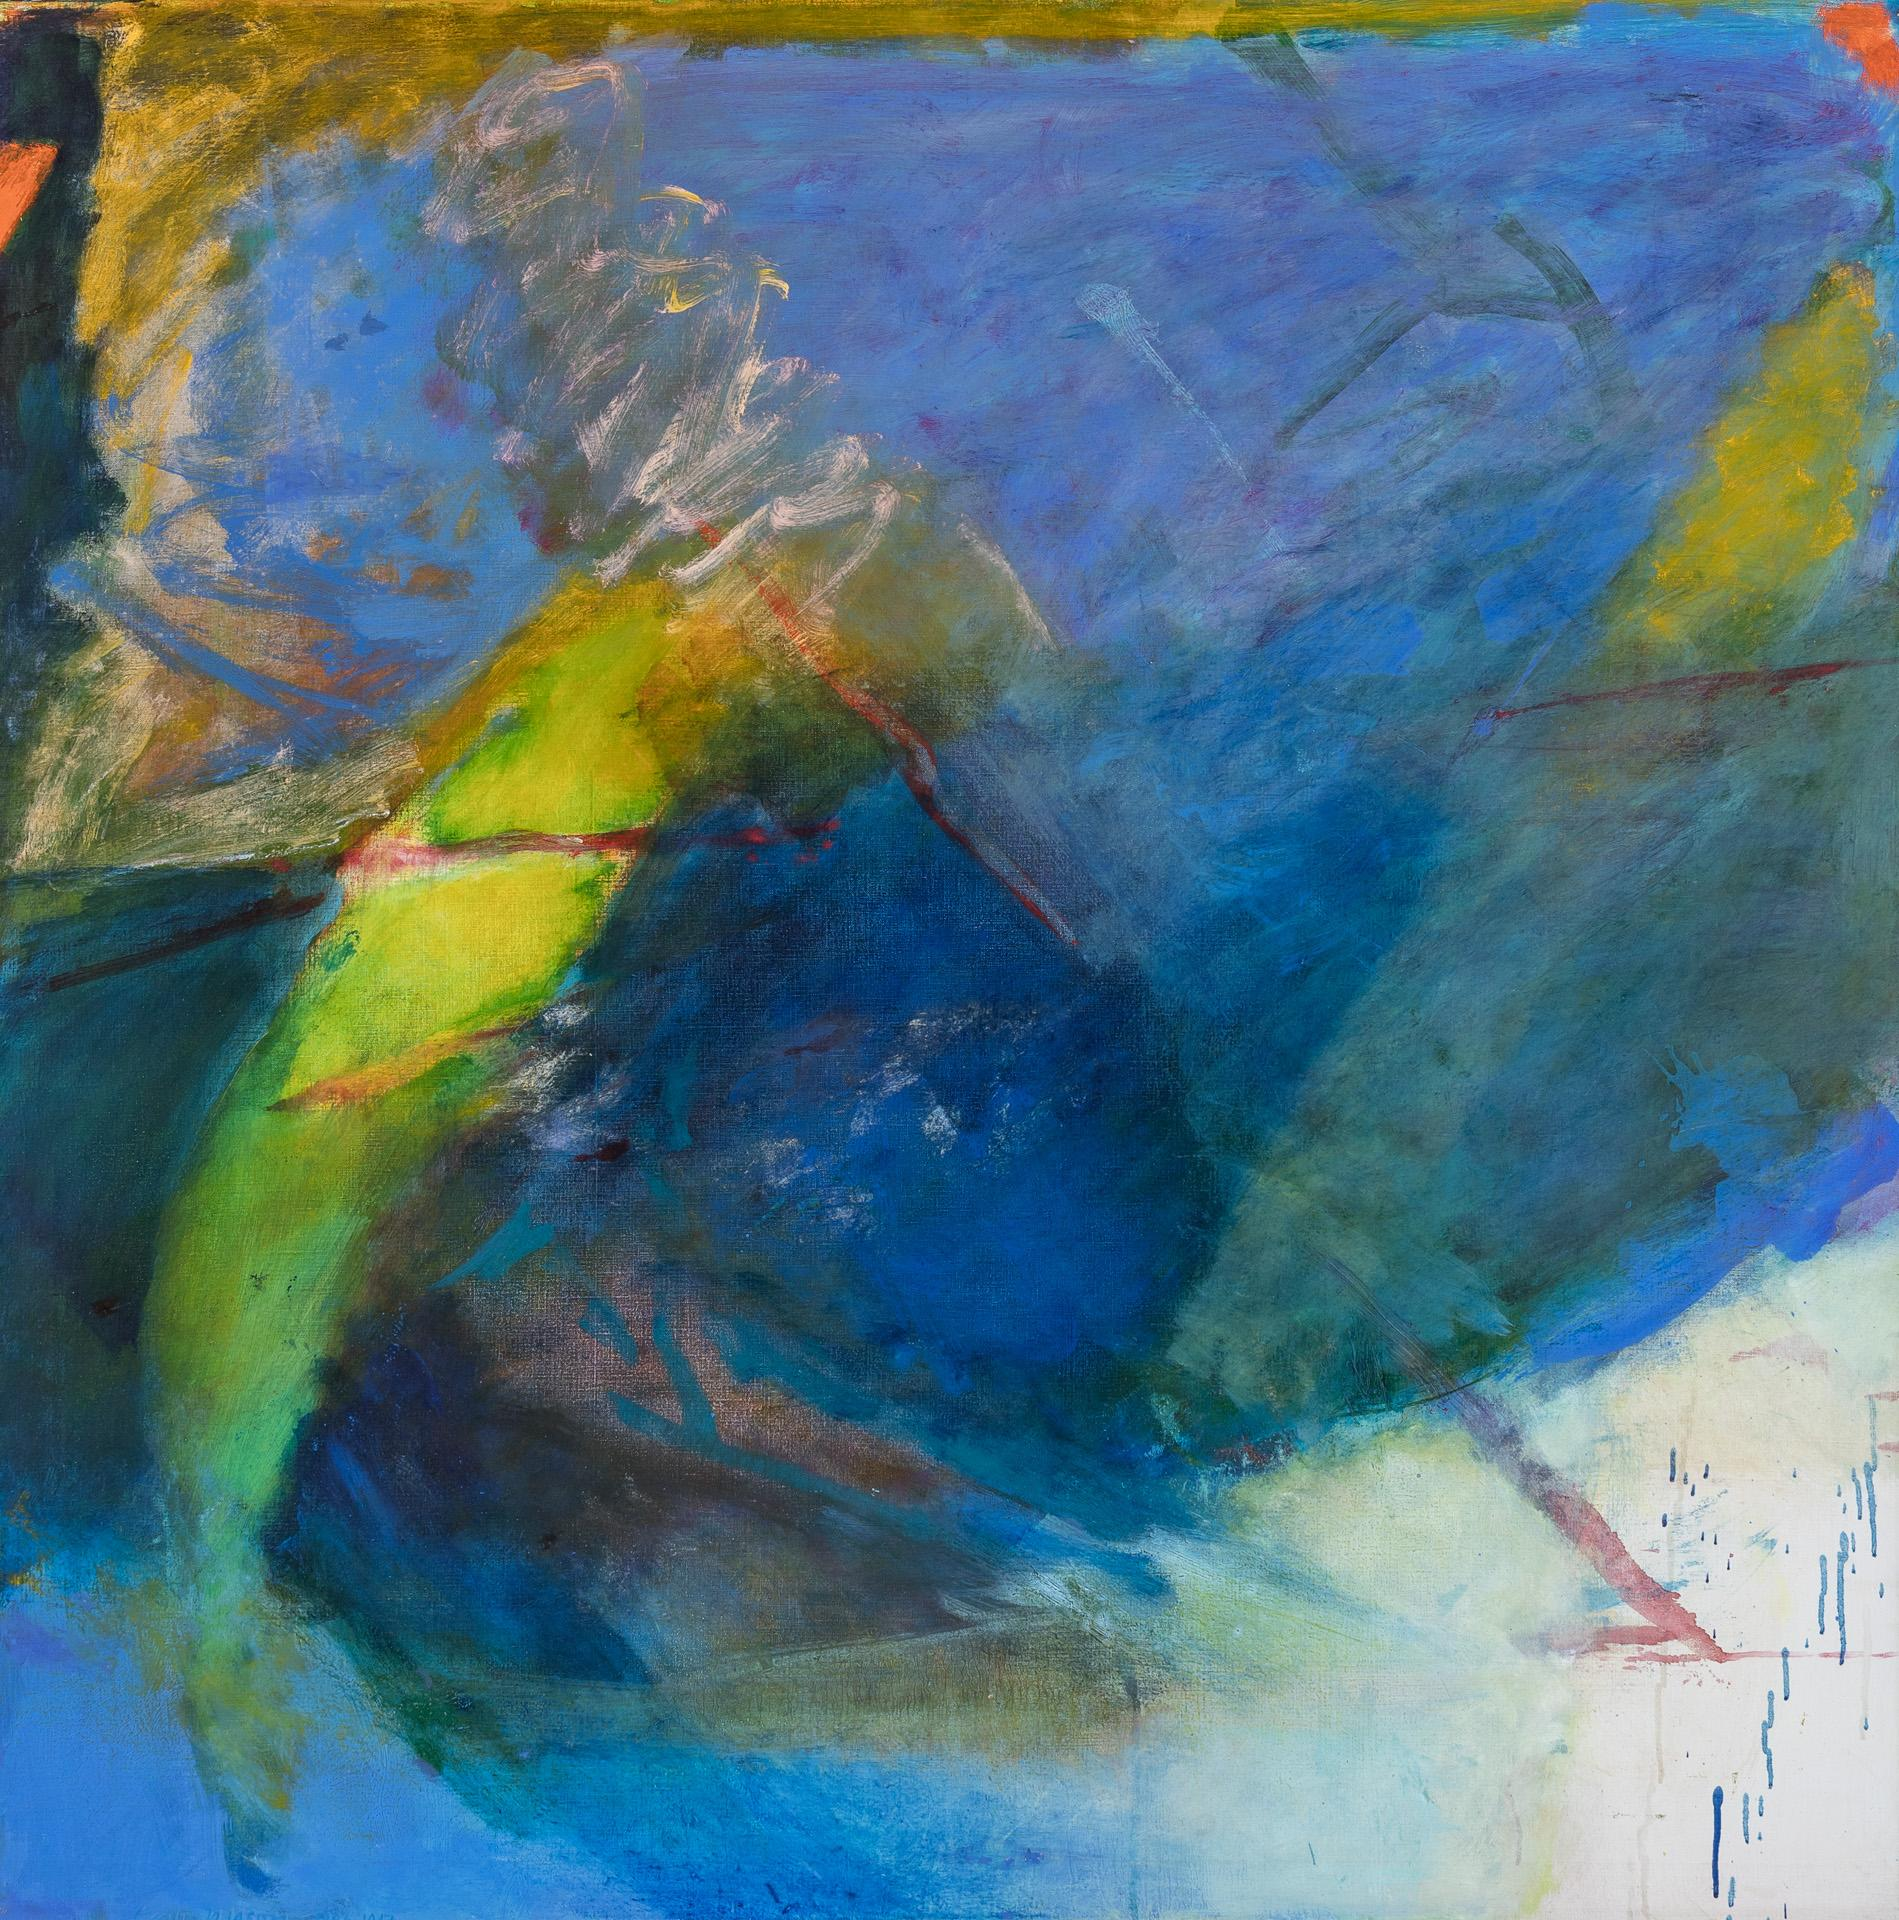 """EMILY MASON, American (1932-2019), Gentian Waves, oil on canvas, signed and dated lower left """"Emily Mason 1986-87"""", 44 x 43 3/4 inch..."""